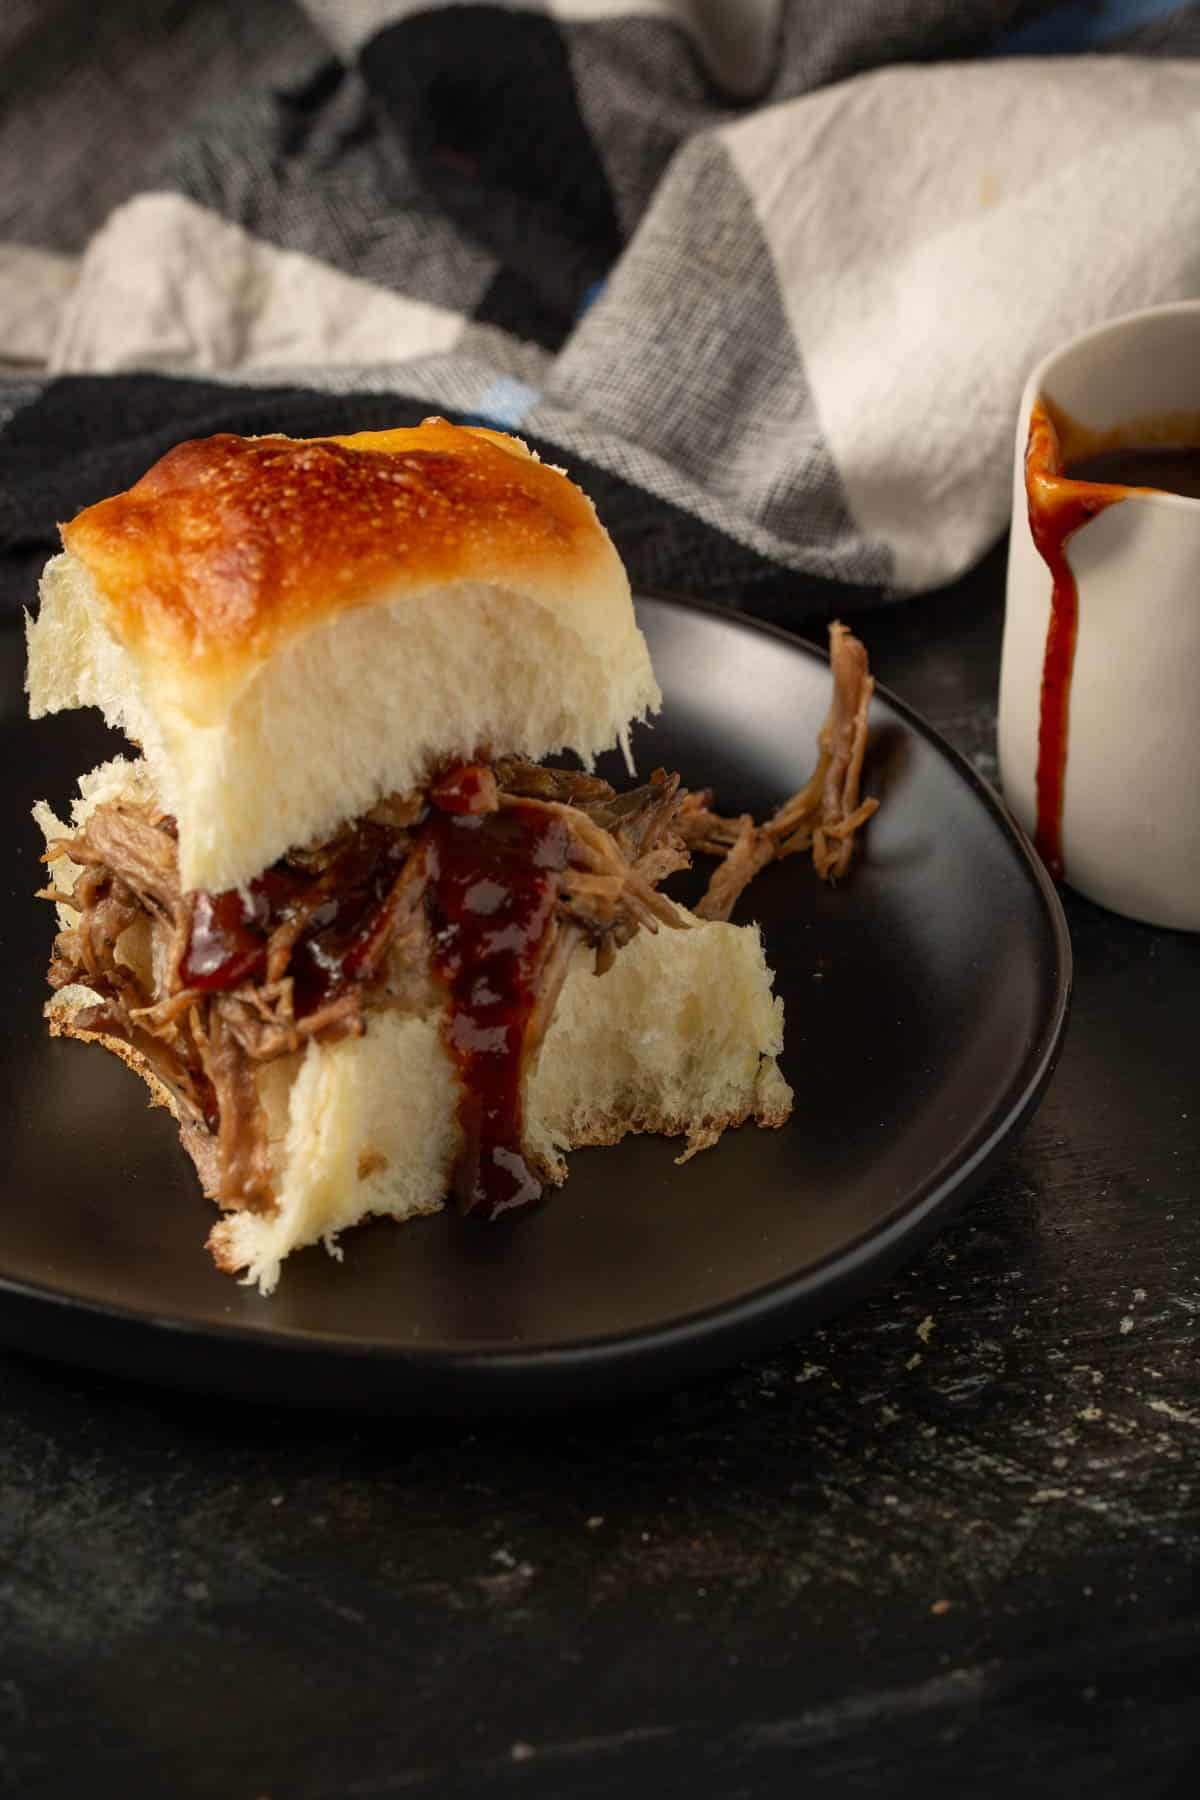 Pulled pork on a challah roll with barbecue sauce.